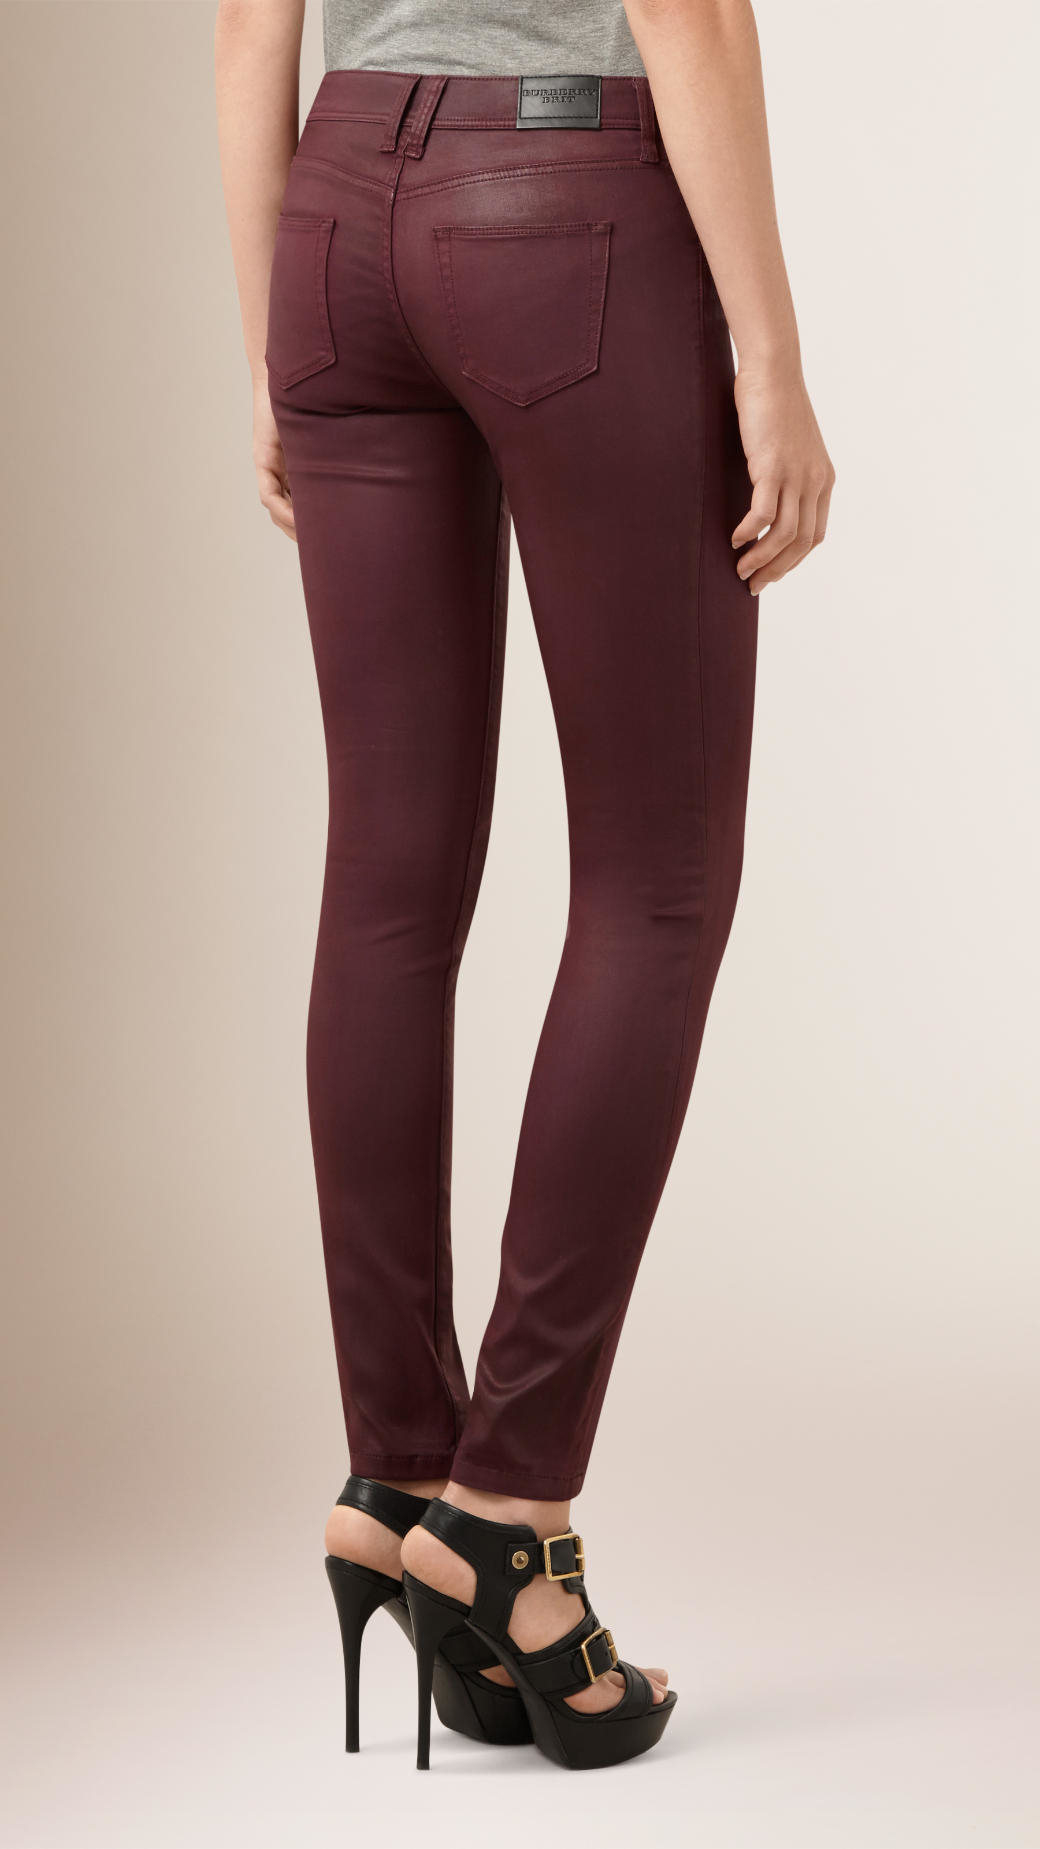 Find a modern, sleek take on classic denim with Old Navy's skinny jeans for women. Old Navy Skinny Jeans Collection. Our women's skinny jeans are made .